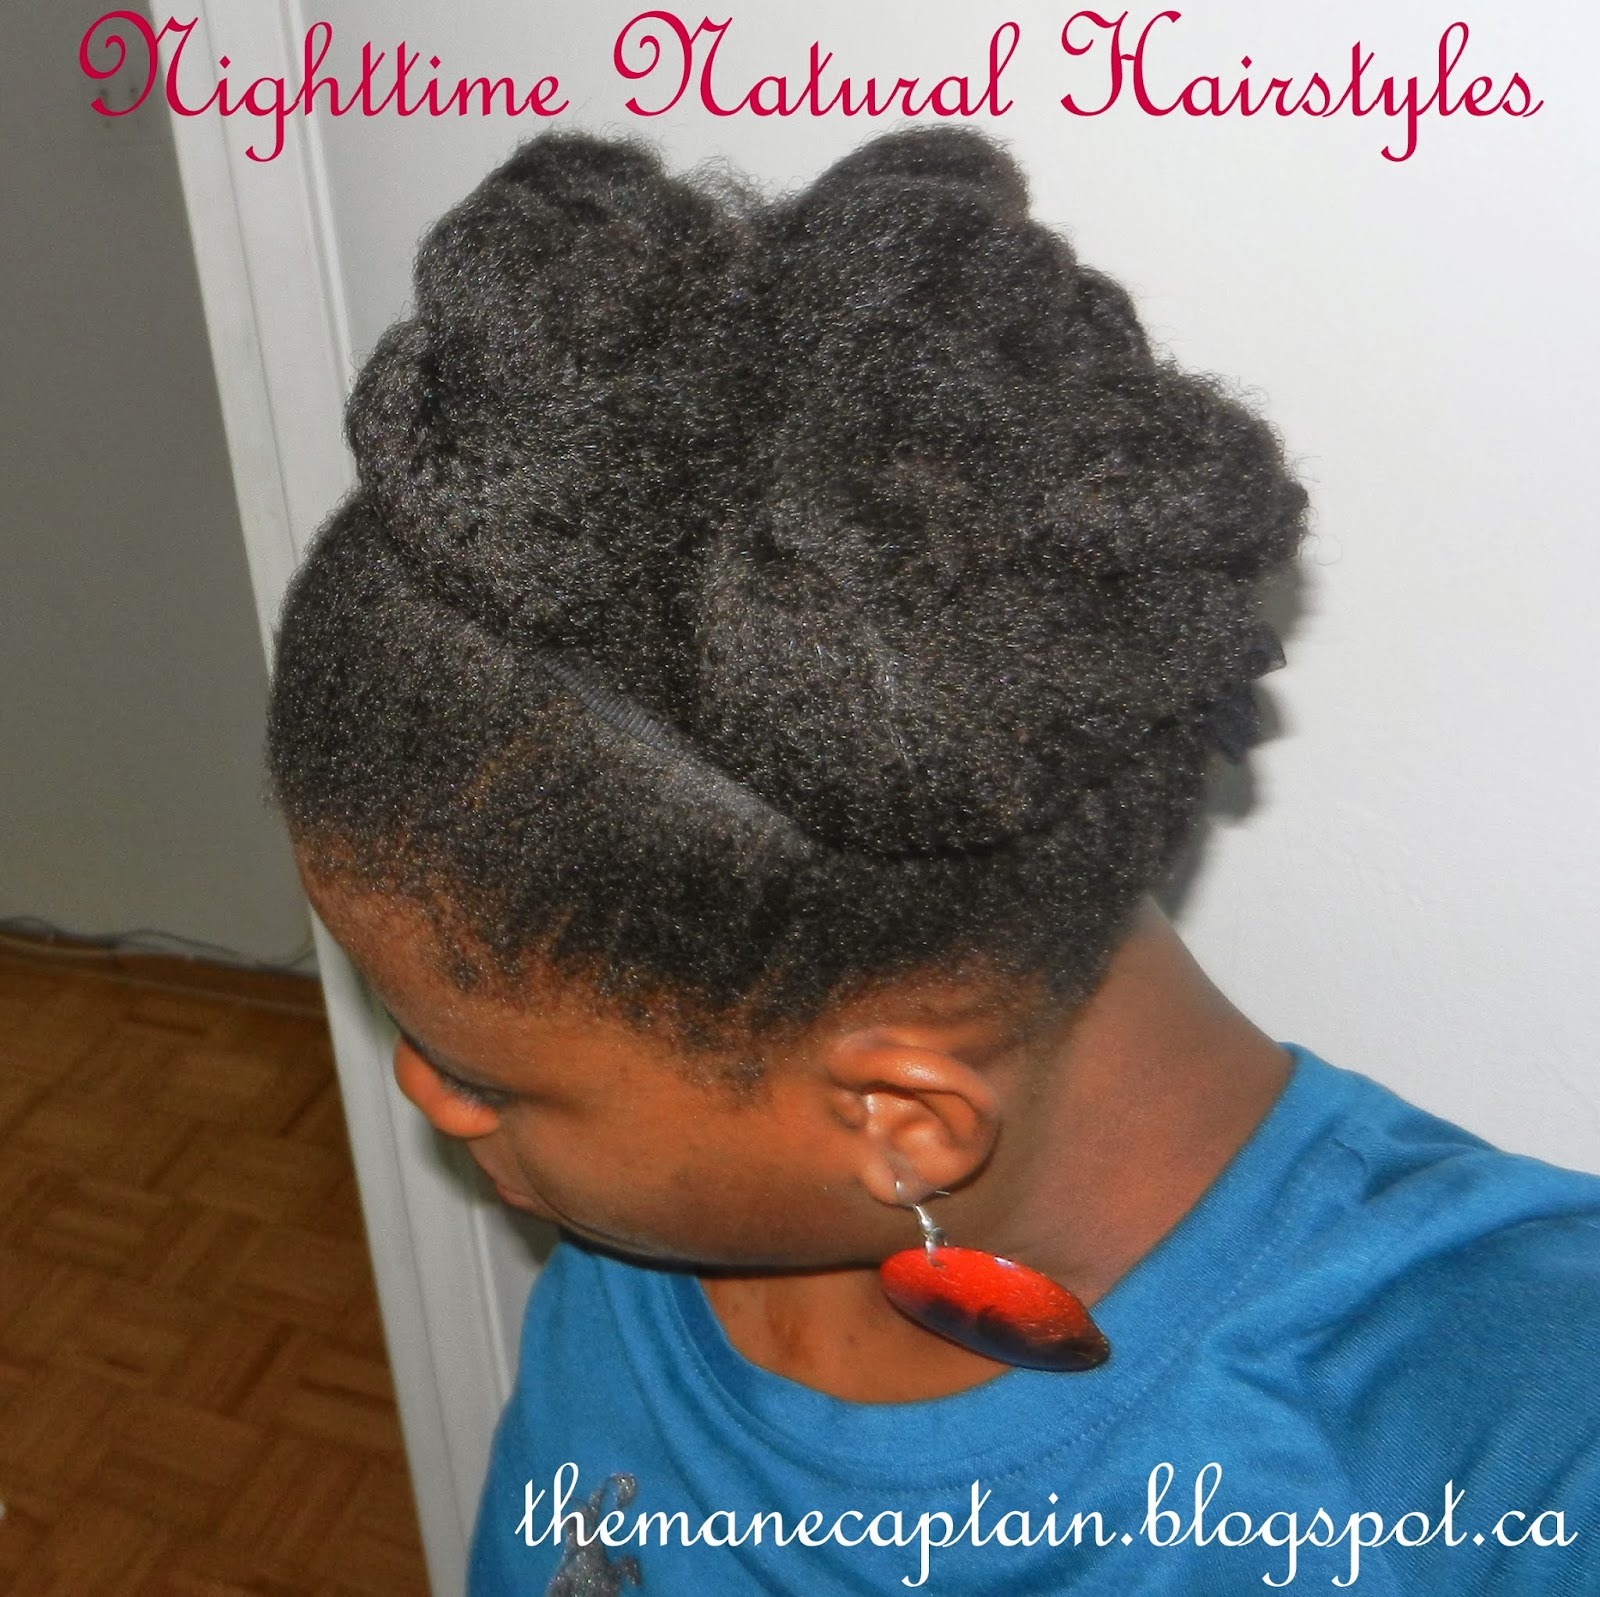 10 Nighttime Solutions For Natural Hair Care Curlynikki